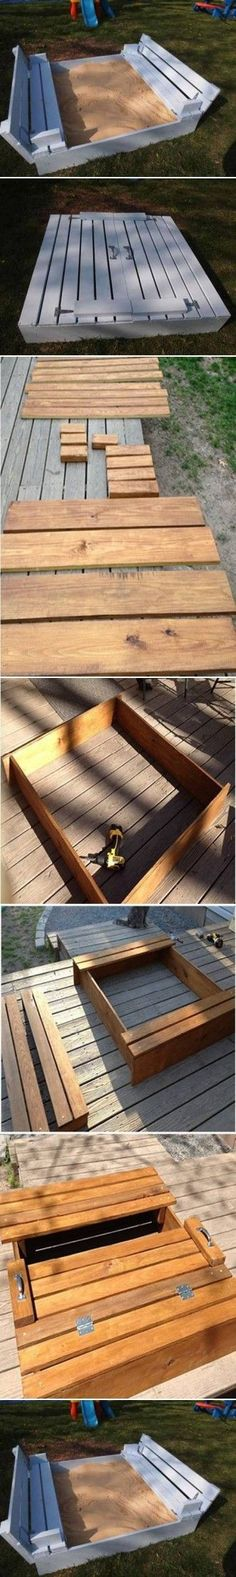 DIY Sandbox DIY Projects